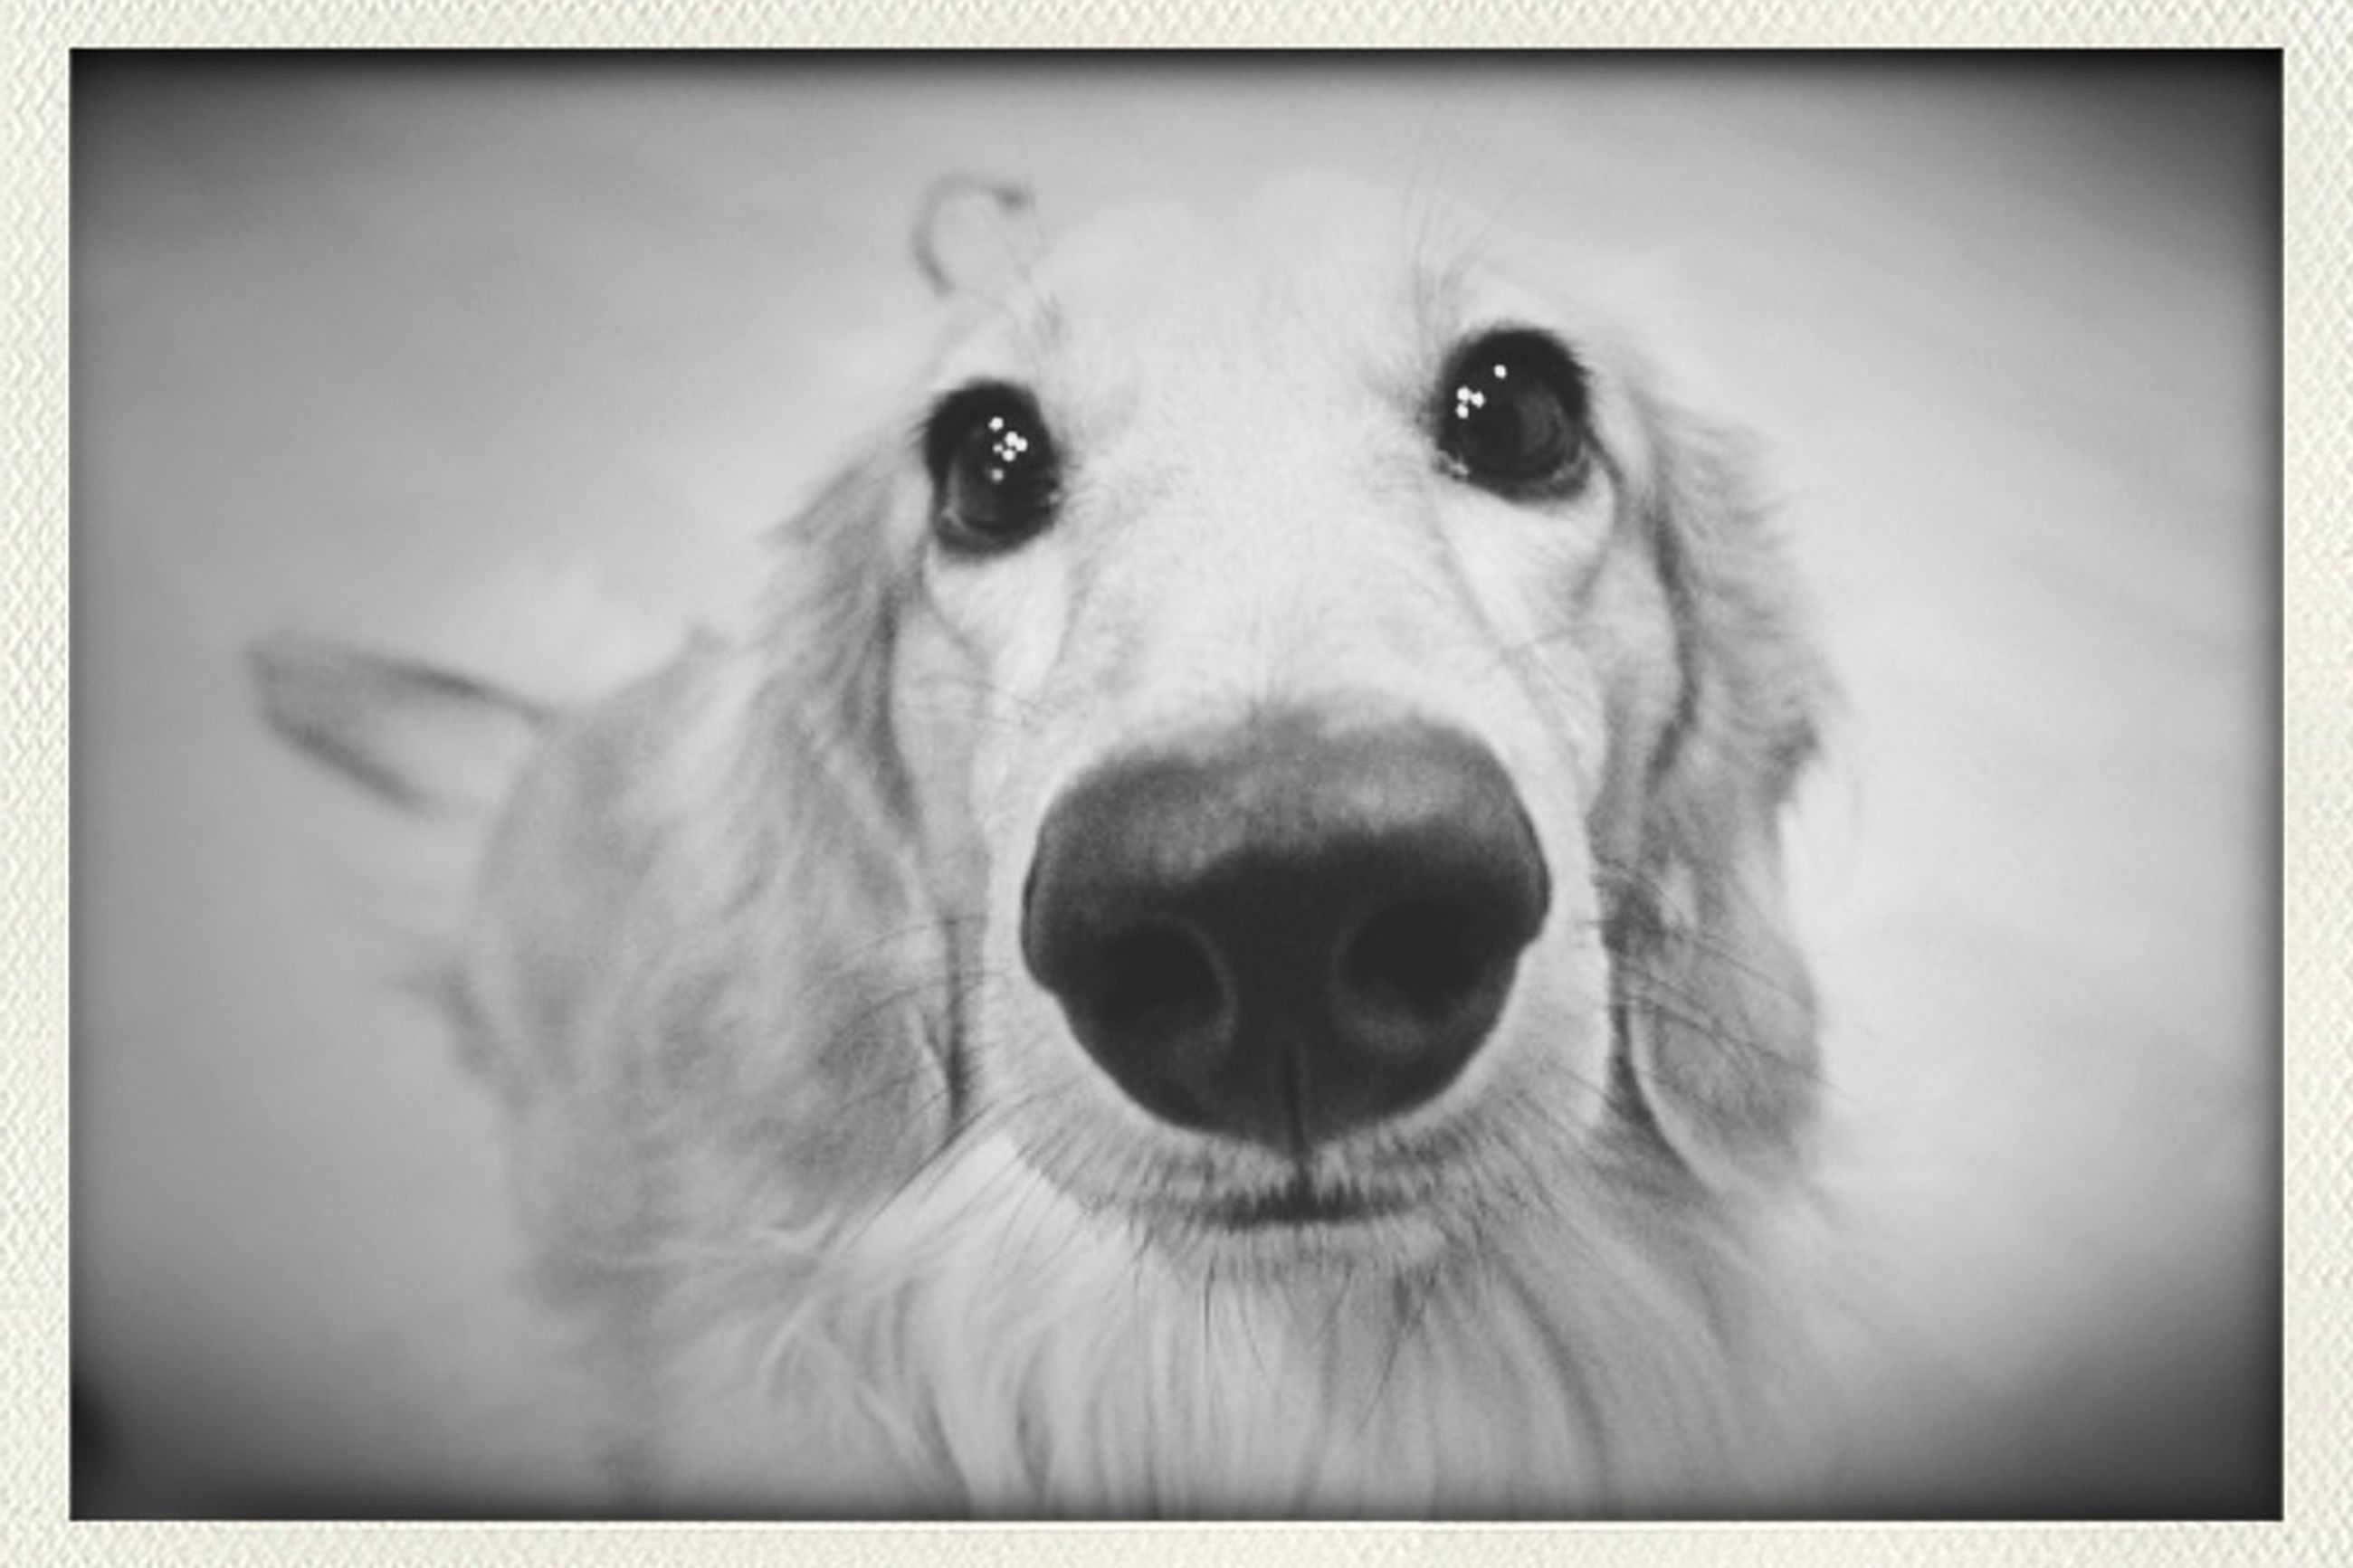 one animal, portrait, dog, close-up, pets, looking at camera, animal themes, domestic animals, indoors, animal head, auto post production filter, transfer print, animal body part, mammal, front view, animal eye, part of, snout, studio shot, animal hair